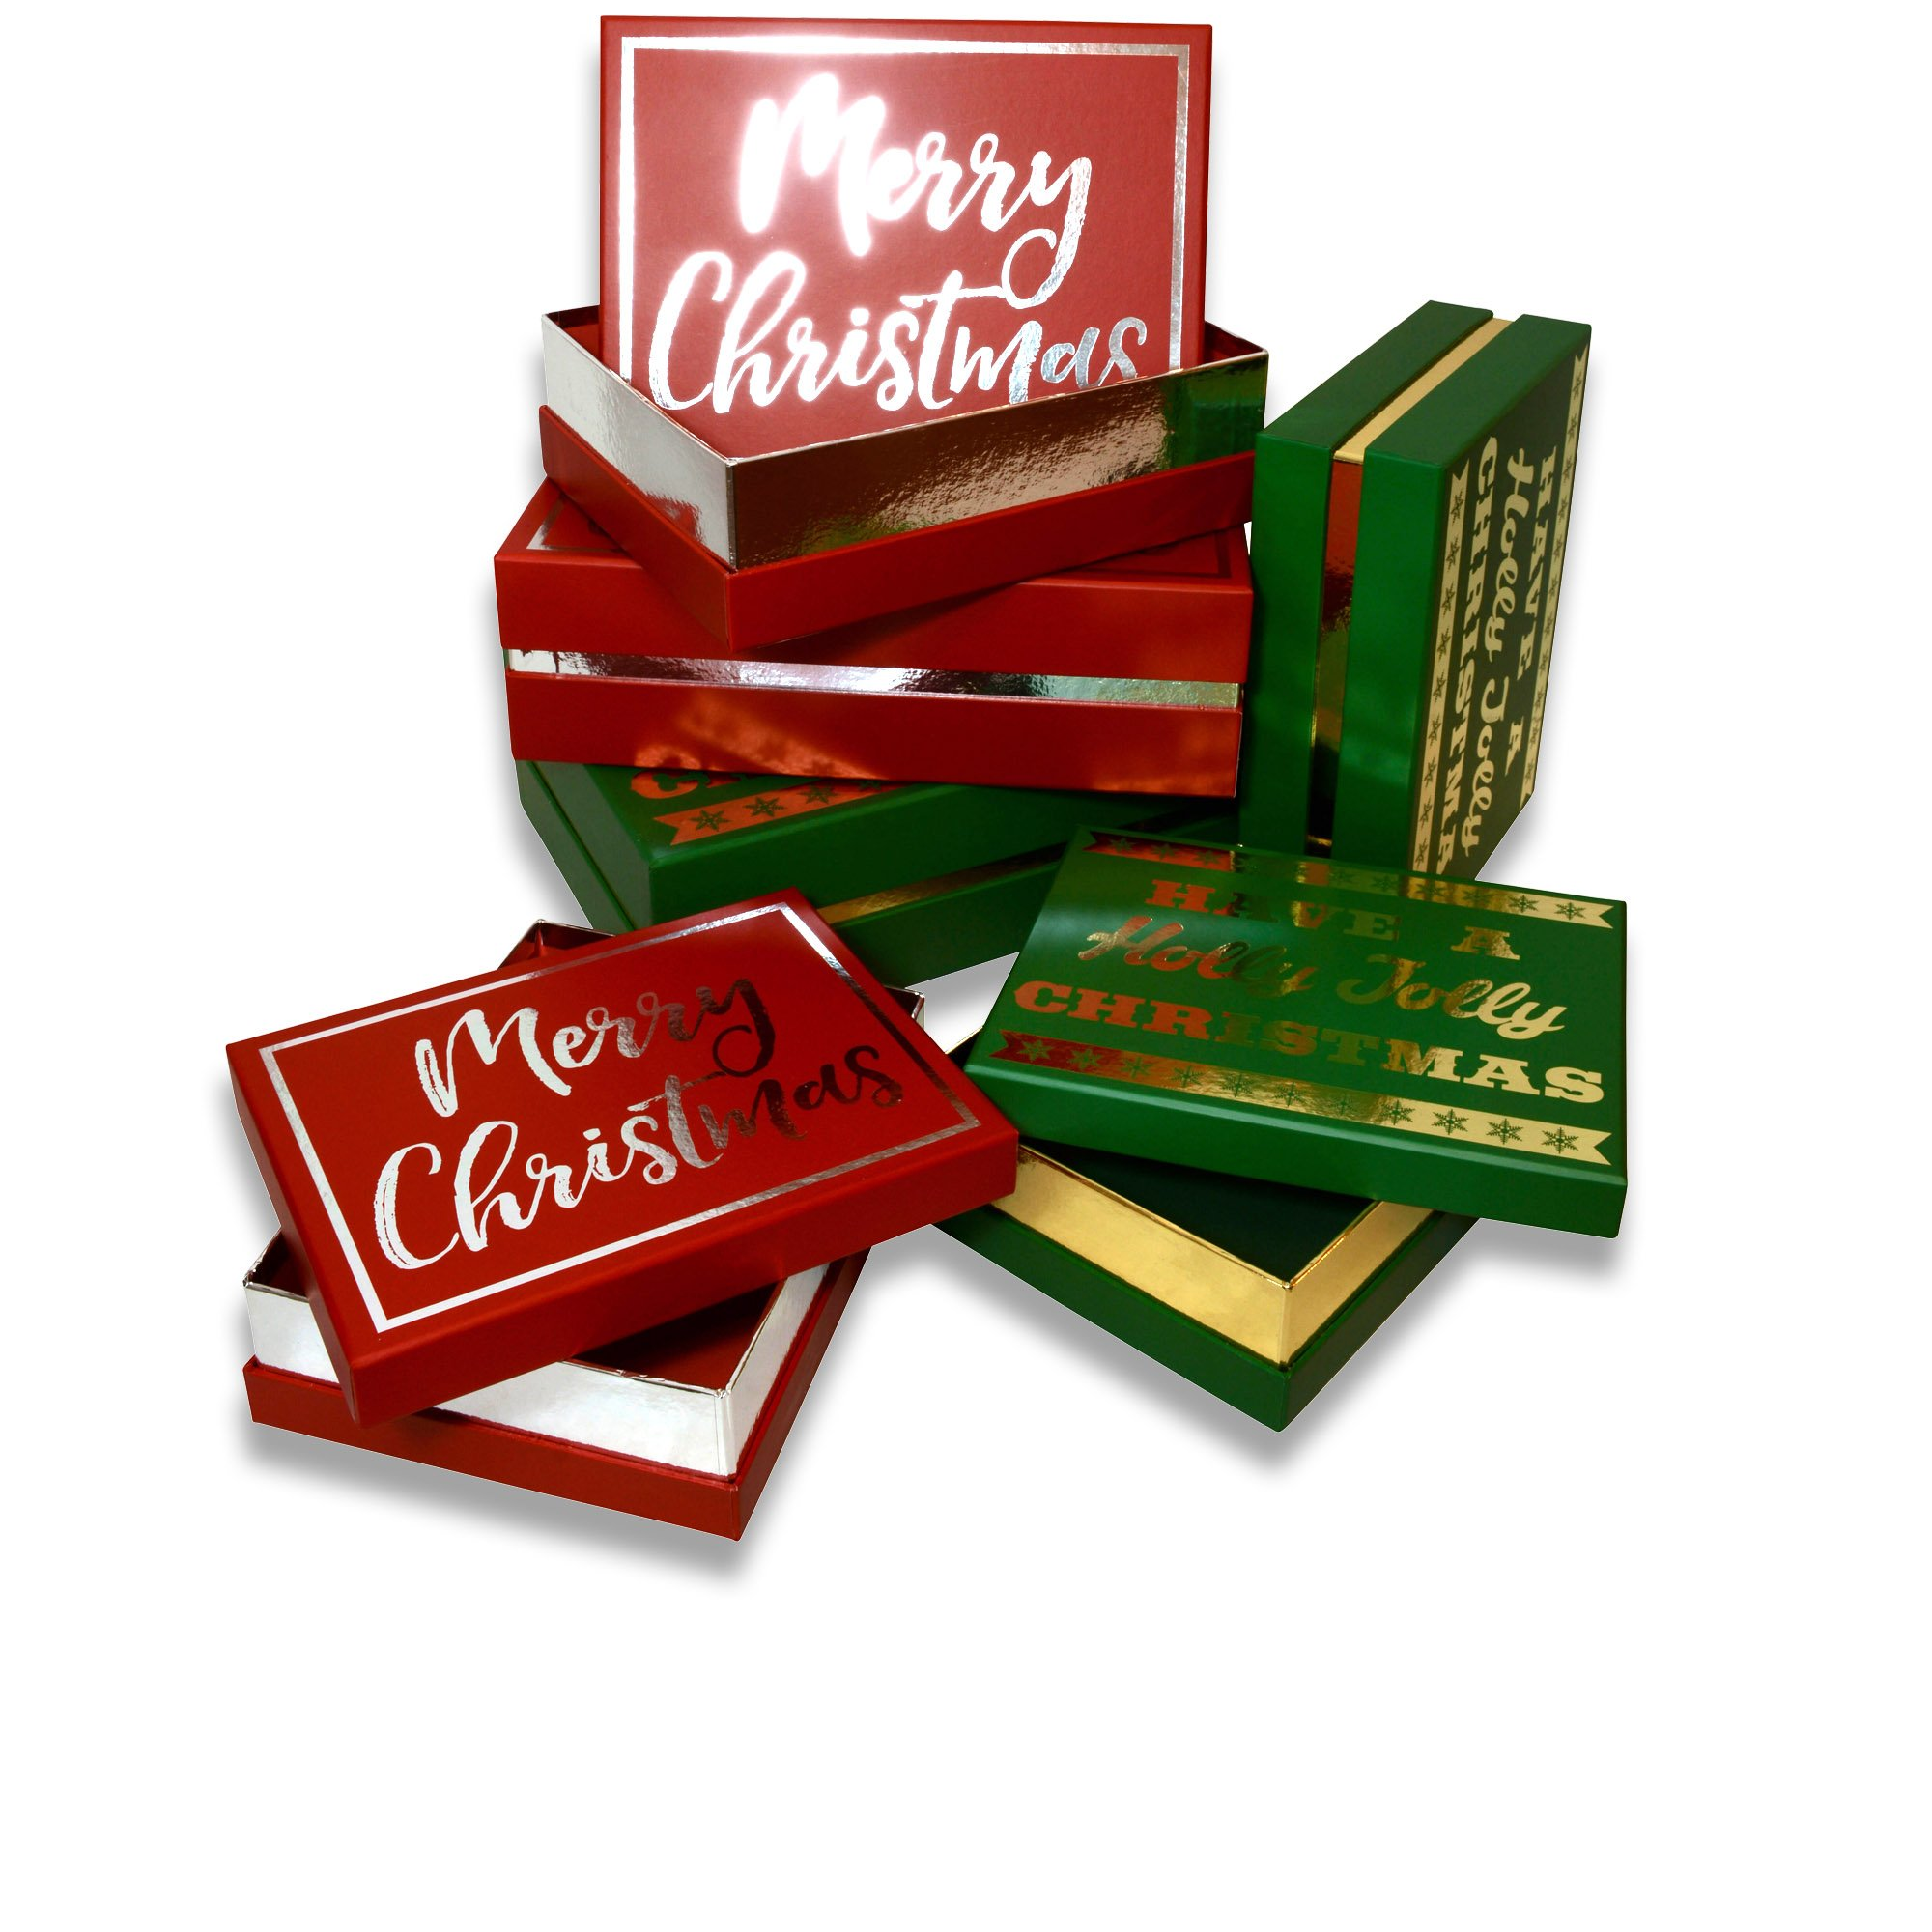 Amazon.com: Christmas gift boxes, 3 count nested, flip top lid with ...